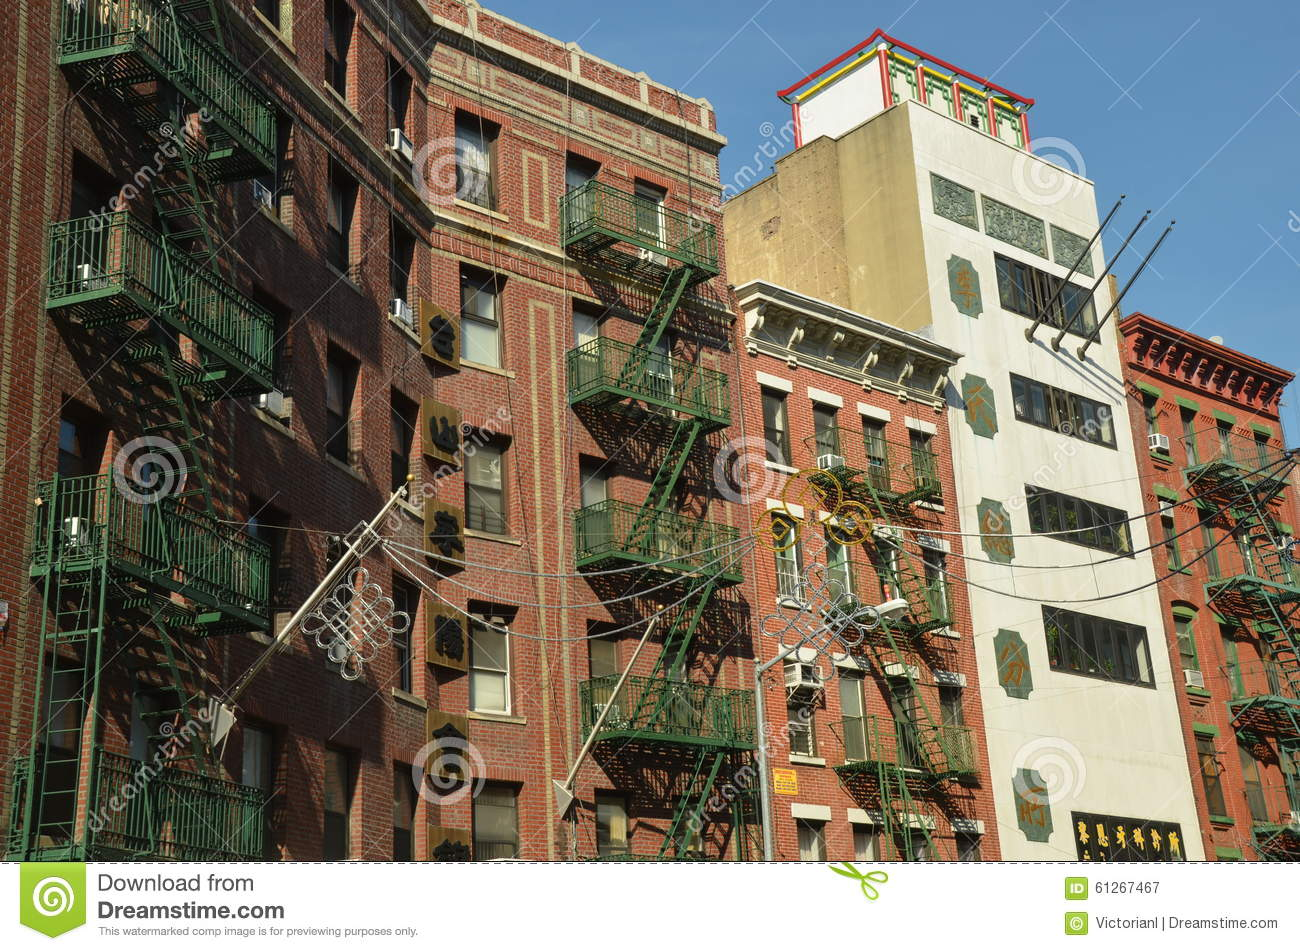 new york city manhattan's chinatown building However, when you arrive it is easy to identify due to the design and size of most  of the buildings and stores chinatown is a vibrant part of the city whose culture.